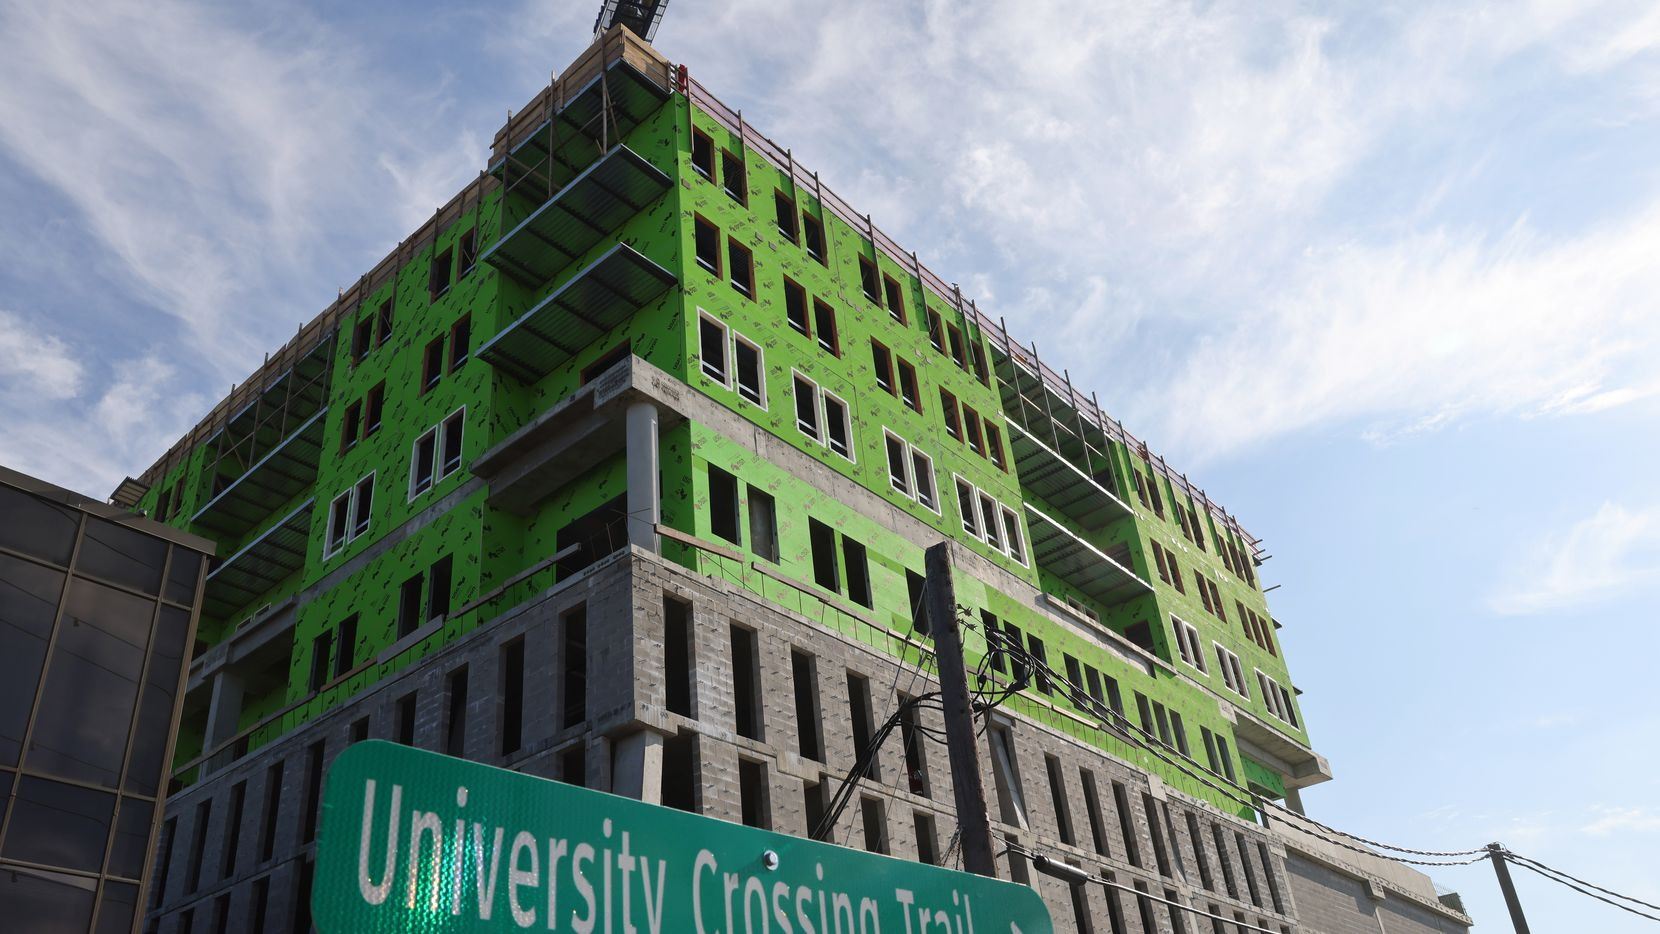 Mill Creek Residential's Modera Katy Trail high-rise will also have connections to the University Crossing Trail, which runs from Mockingbird Station.